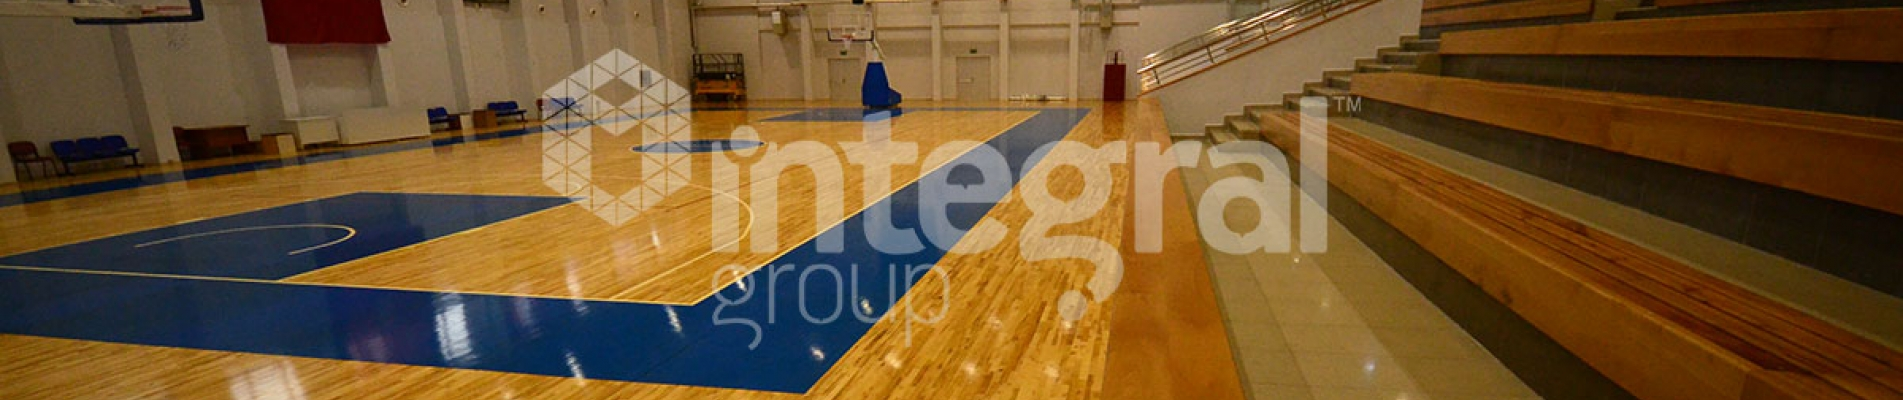 Importance of Sports Hall Construction in Schools?